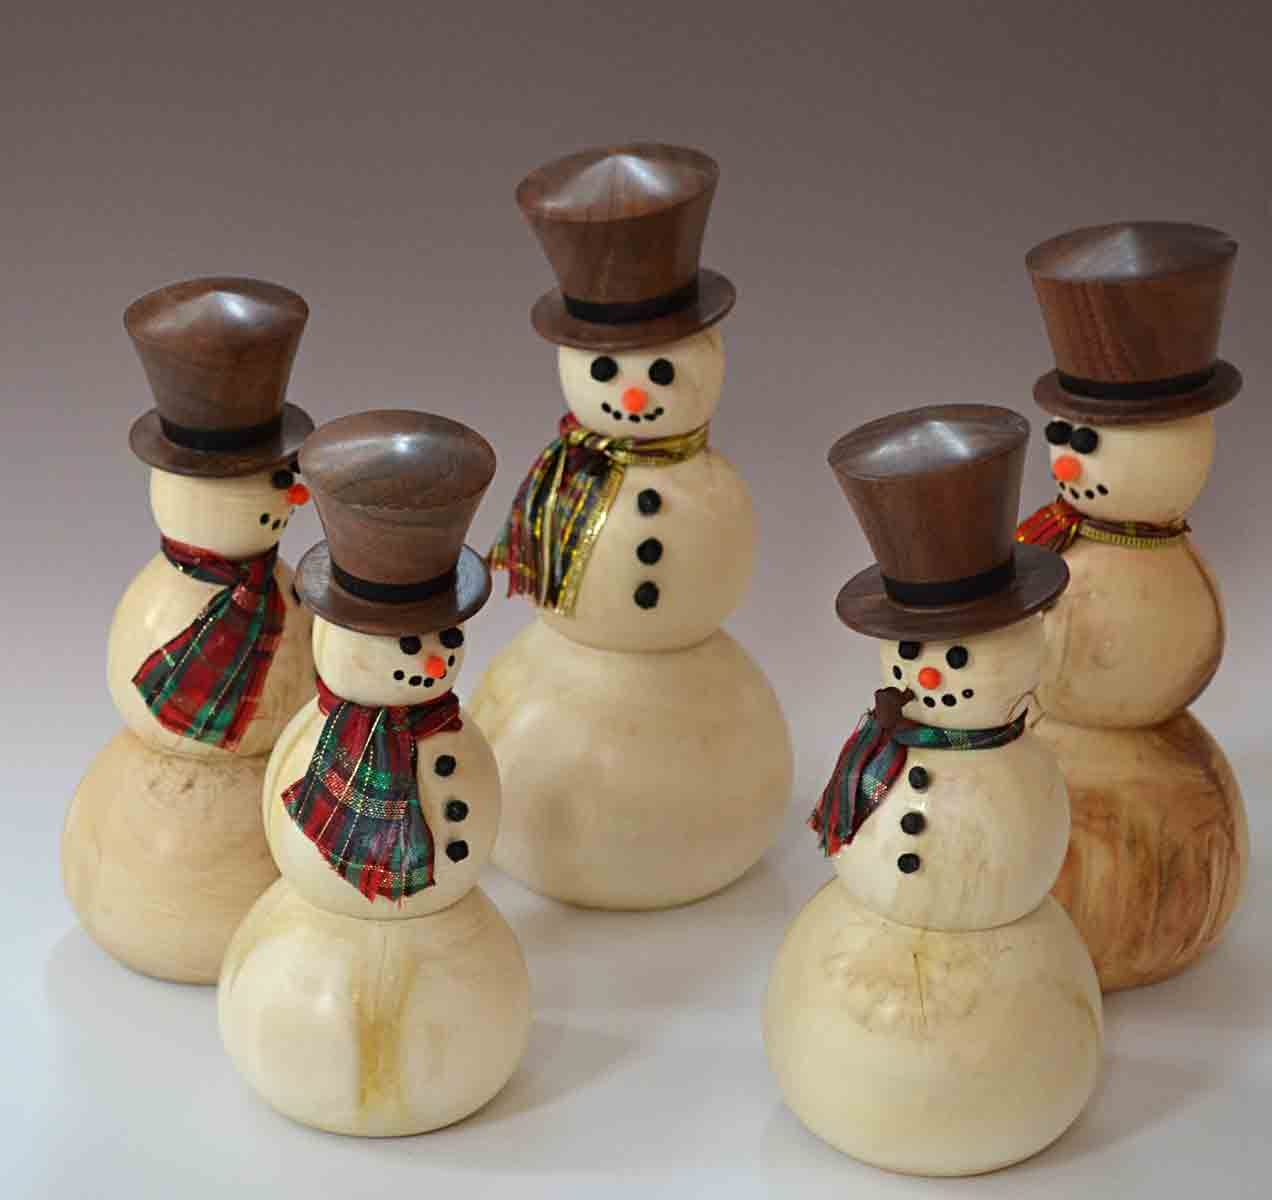 woodturning christmas ornaments. képtalálat a következőre: \u201ewood turning christmas ornaments\u201d woodturning ornaments m